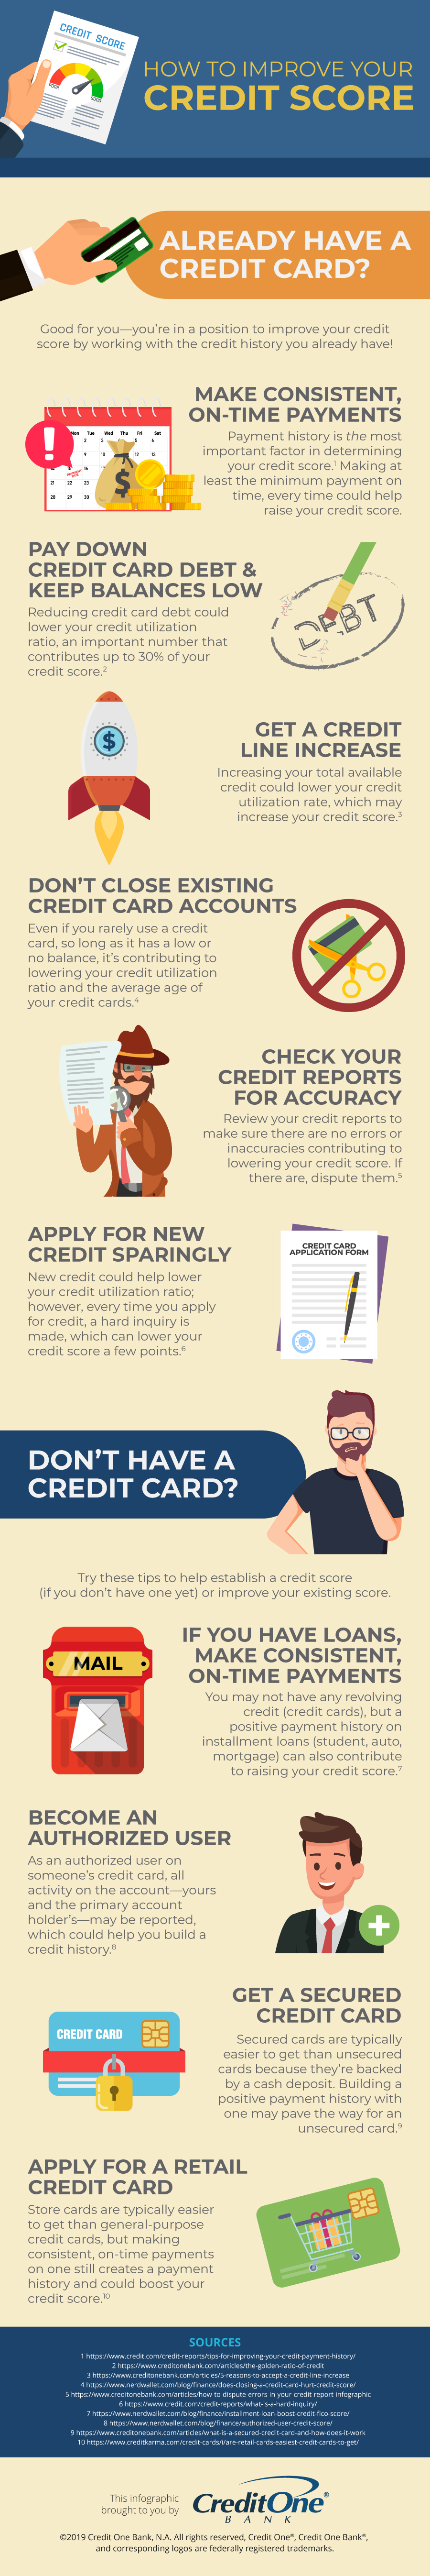 How to Improve Credit Score Infographic